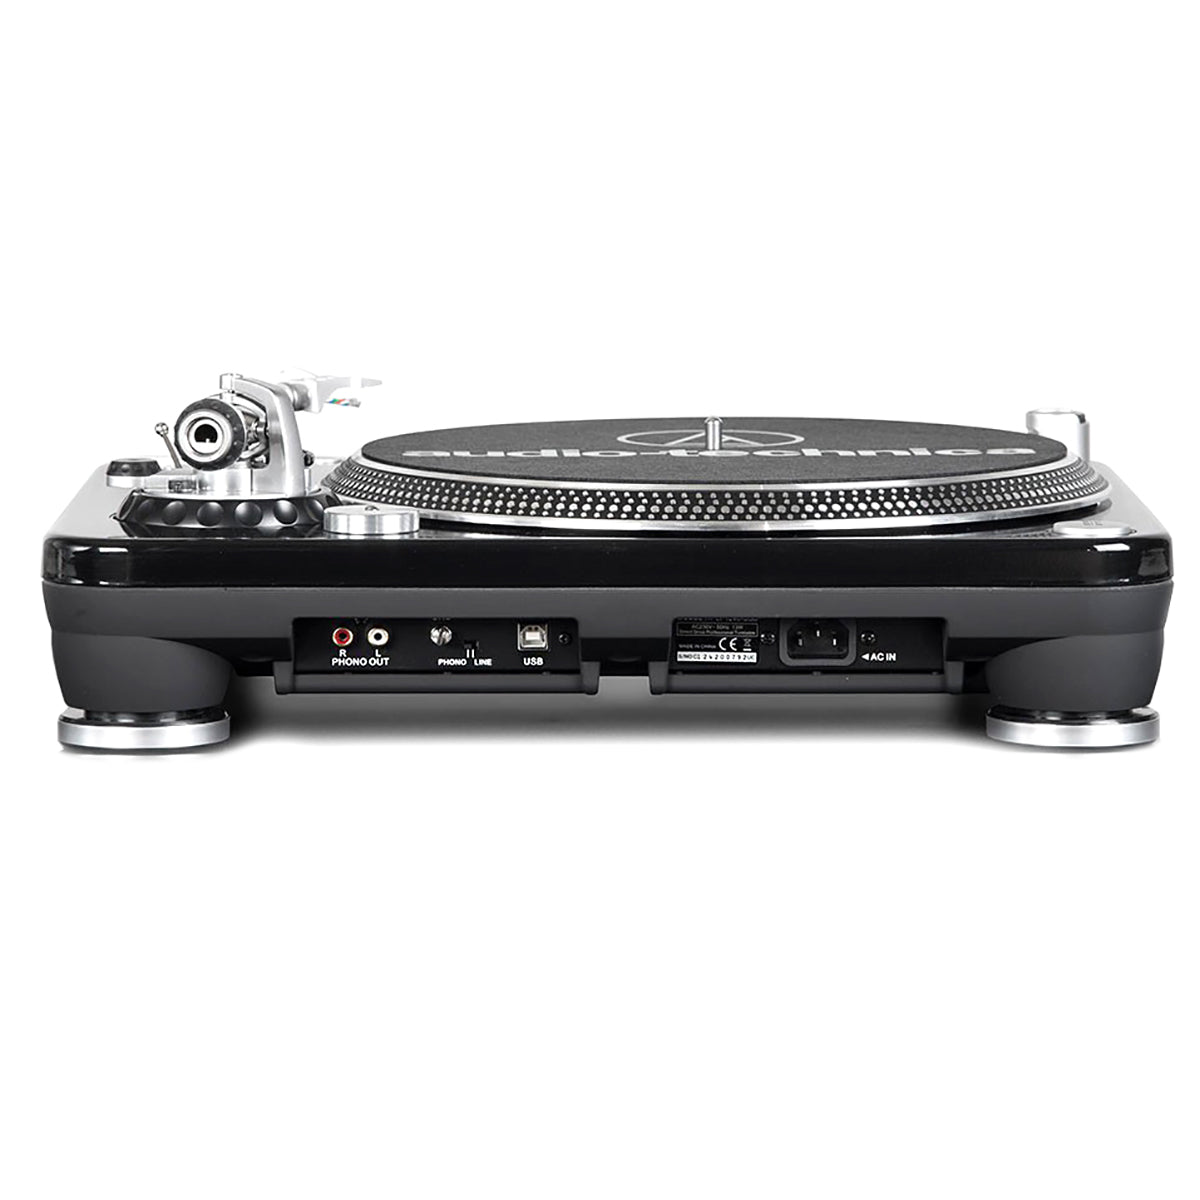 Audio-Technica: AT-LP1240-USBXP DJ Turntable w/ XP5 Cartridge